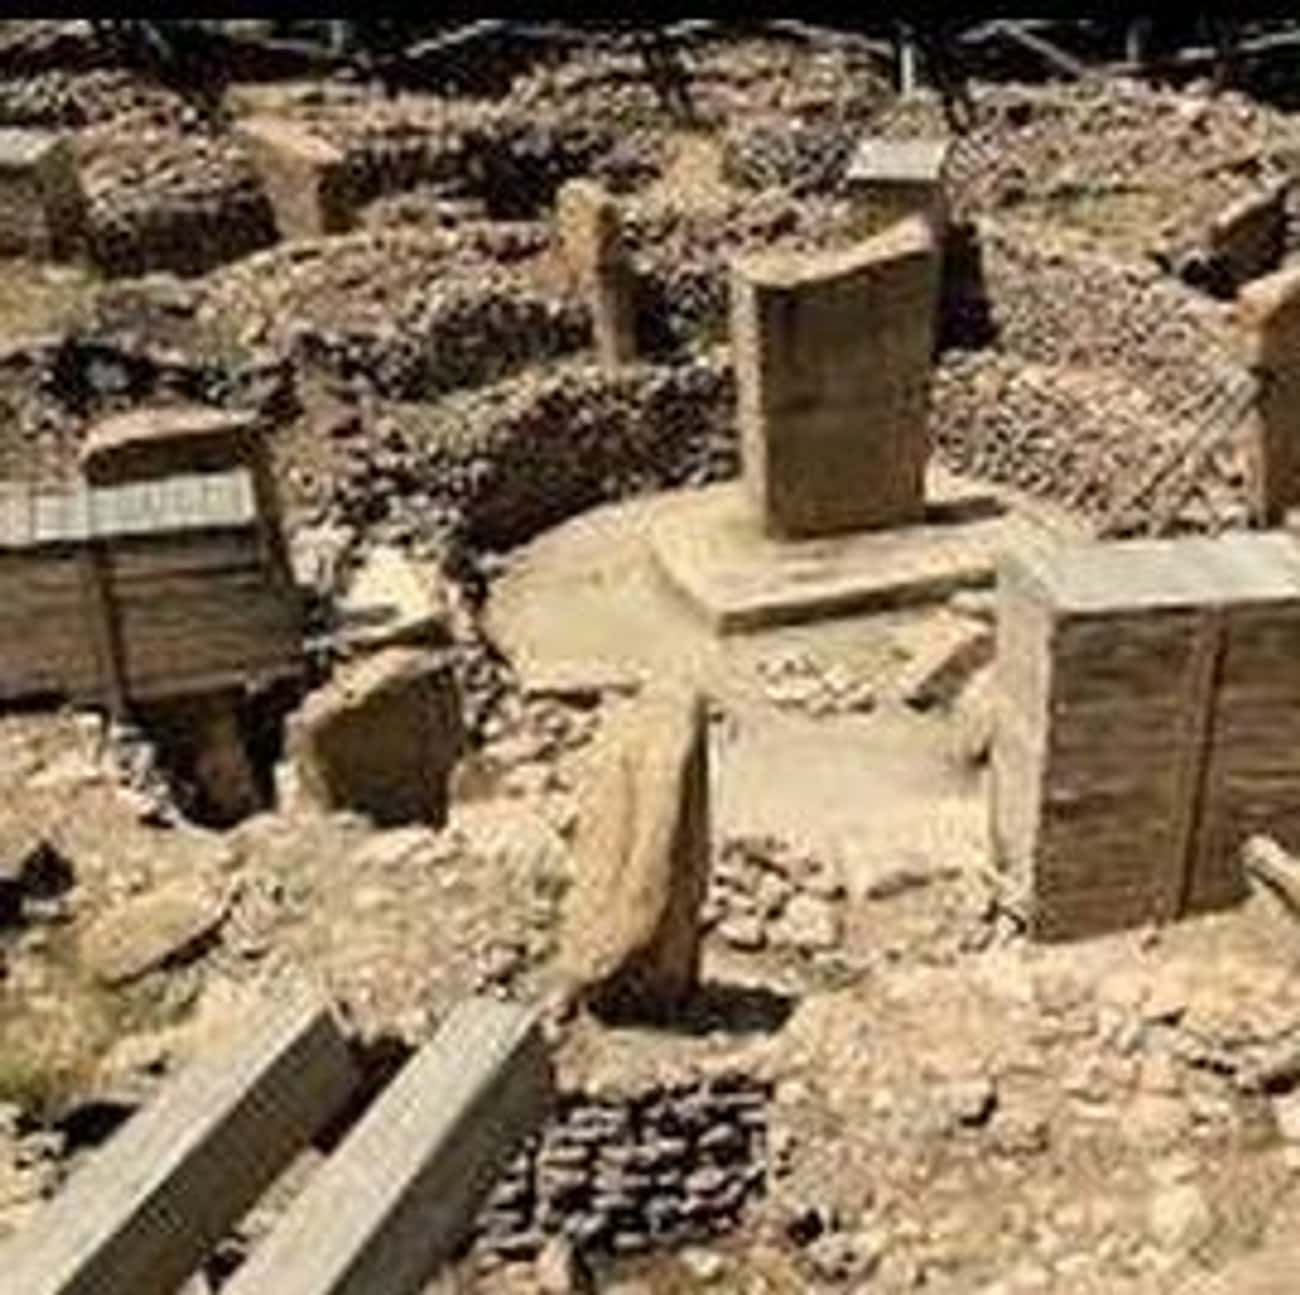 It's Almost 12,000 Years Old And Was Abandoned For 9,000 Years